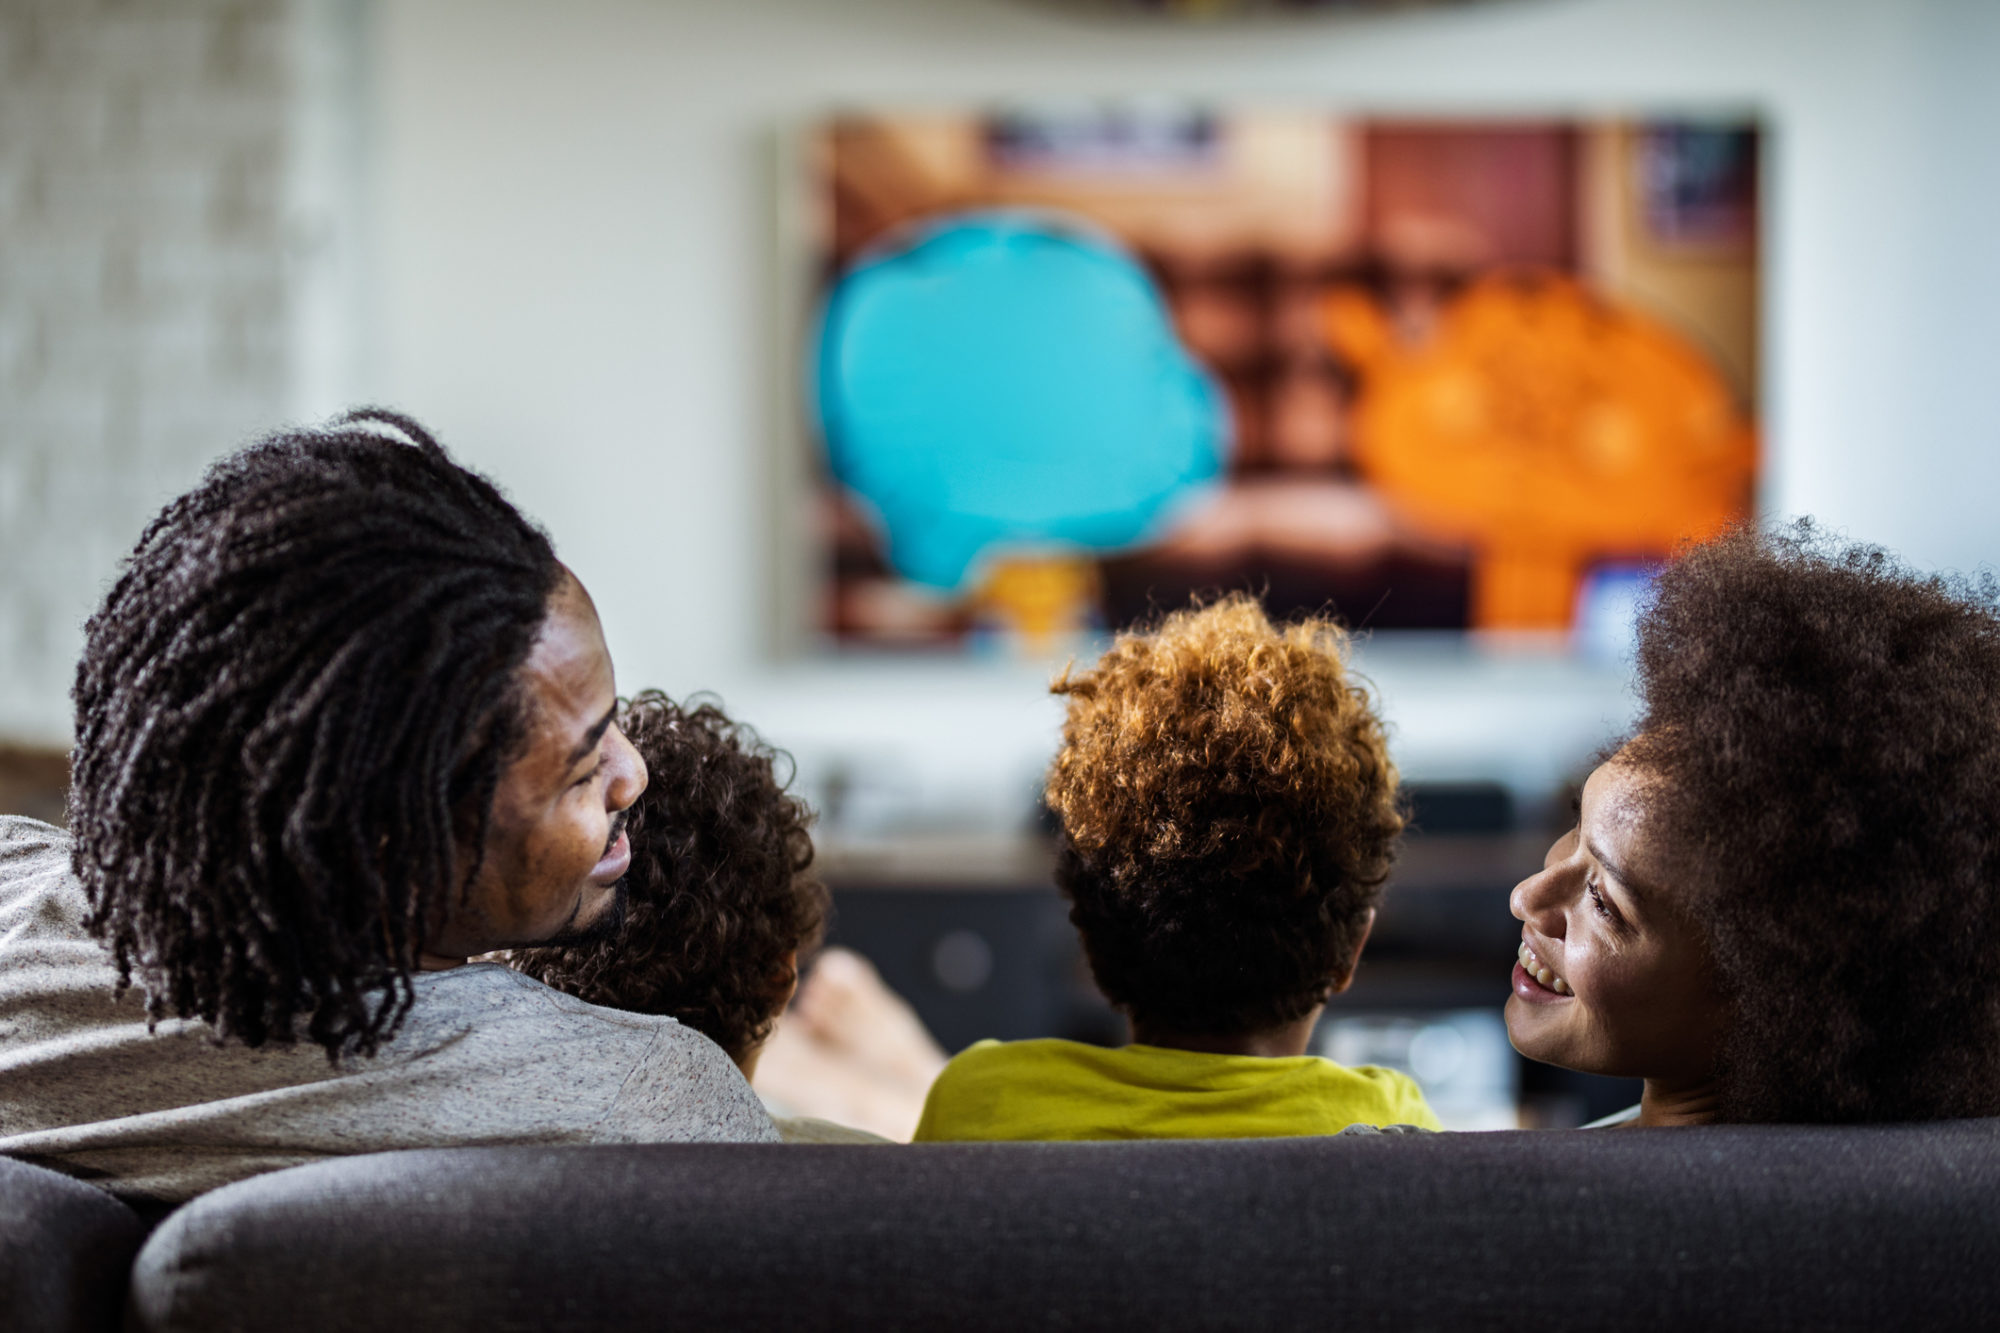 Family streaming live TV in living room on couch